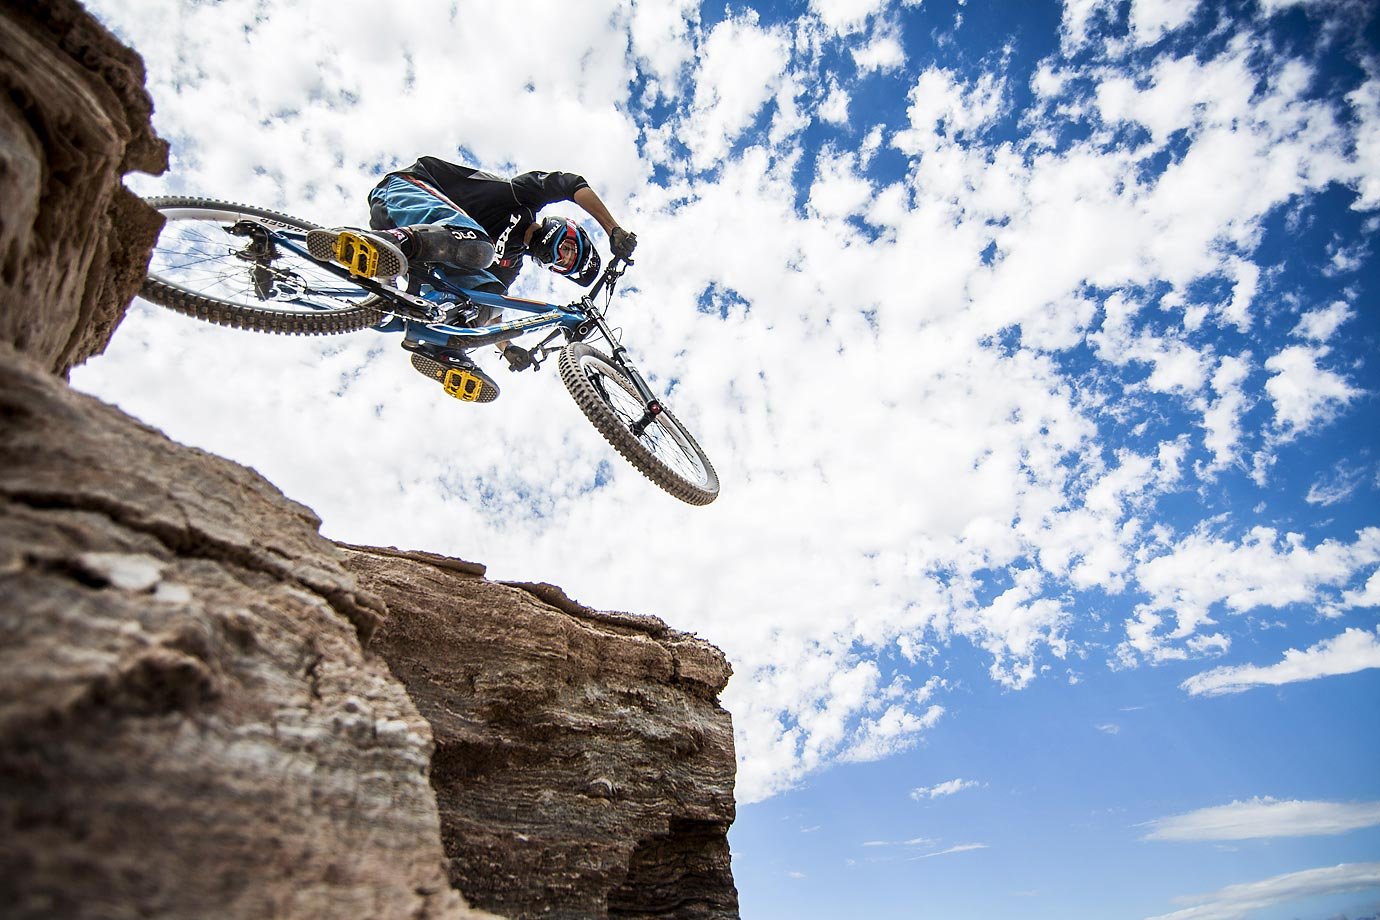 Ryan Howard of the U.S. drops onto the top ridge of his course line during qualifications for Red Bull Rampage freeride event in Virgin, Utah.